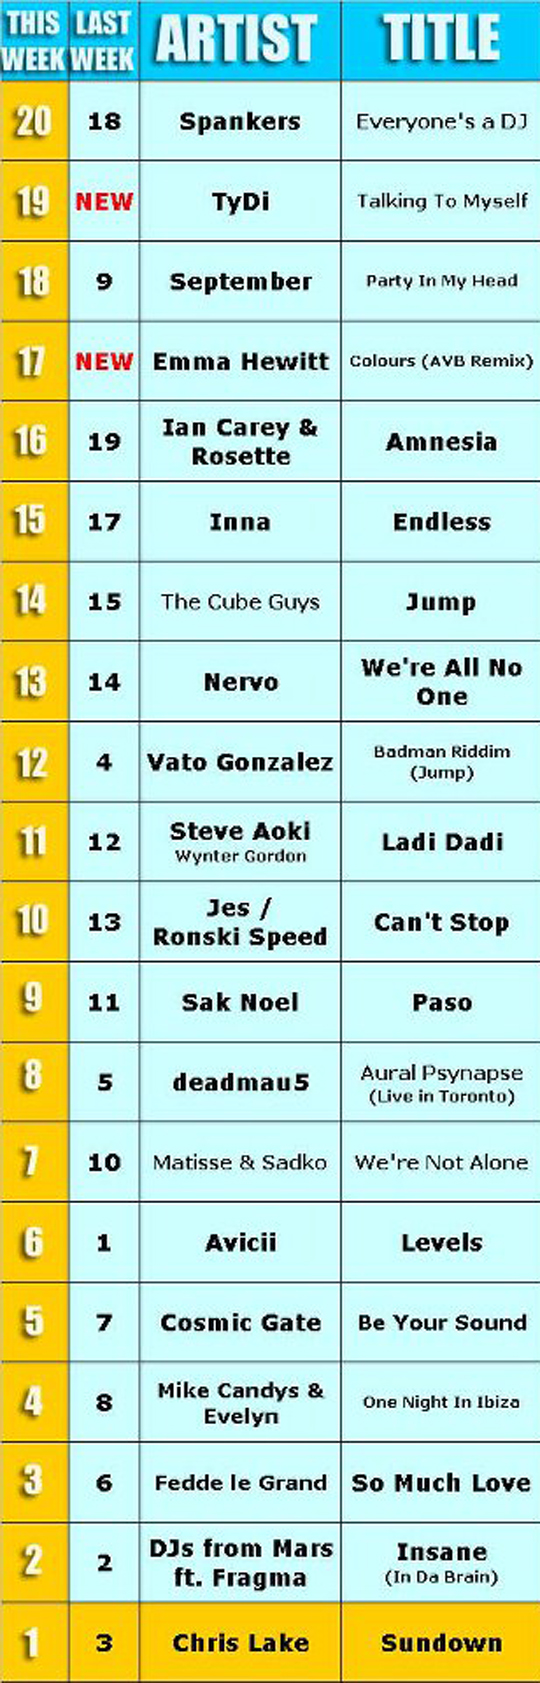 Insane (In Da Brain) From DJs From Mars And Fragma Is Number 2 On BPM TV's Hot 20 Dance Chart